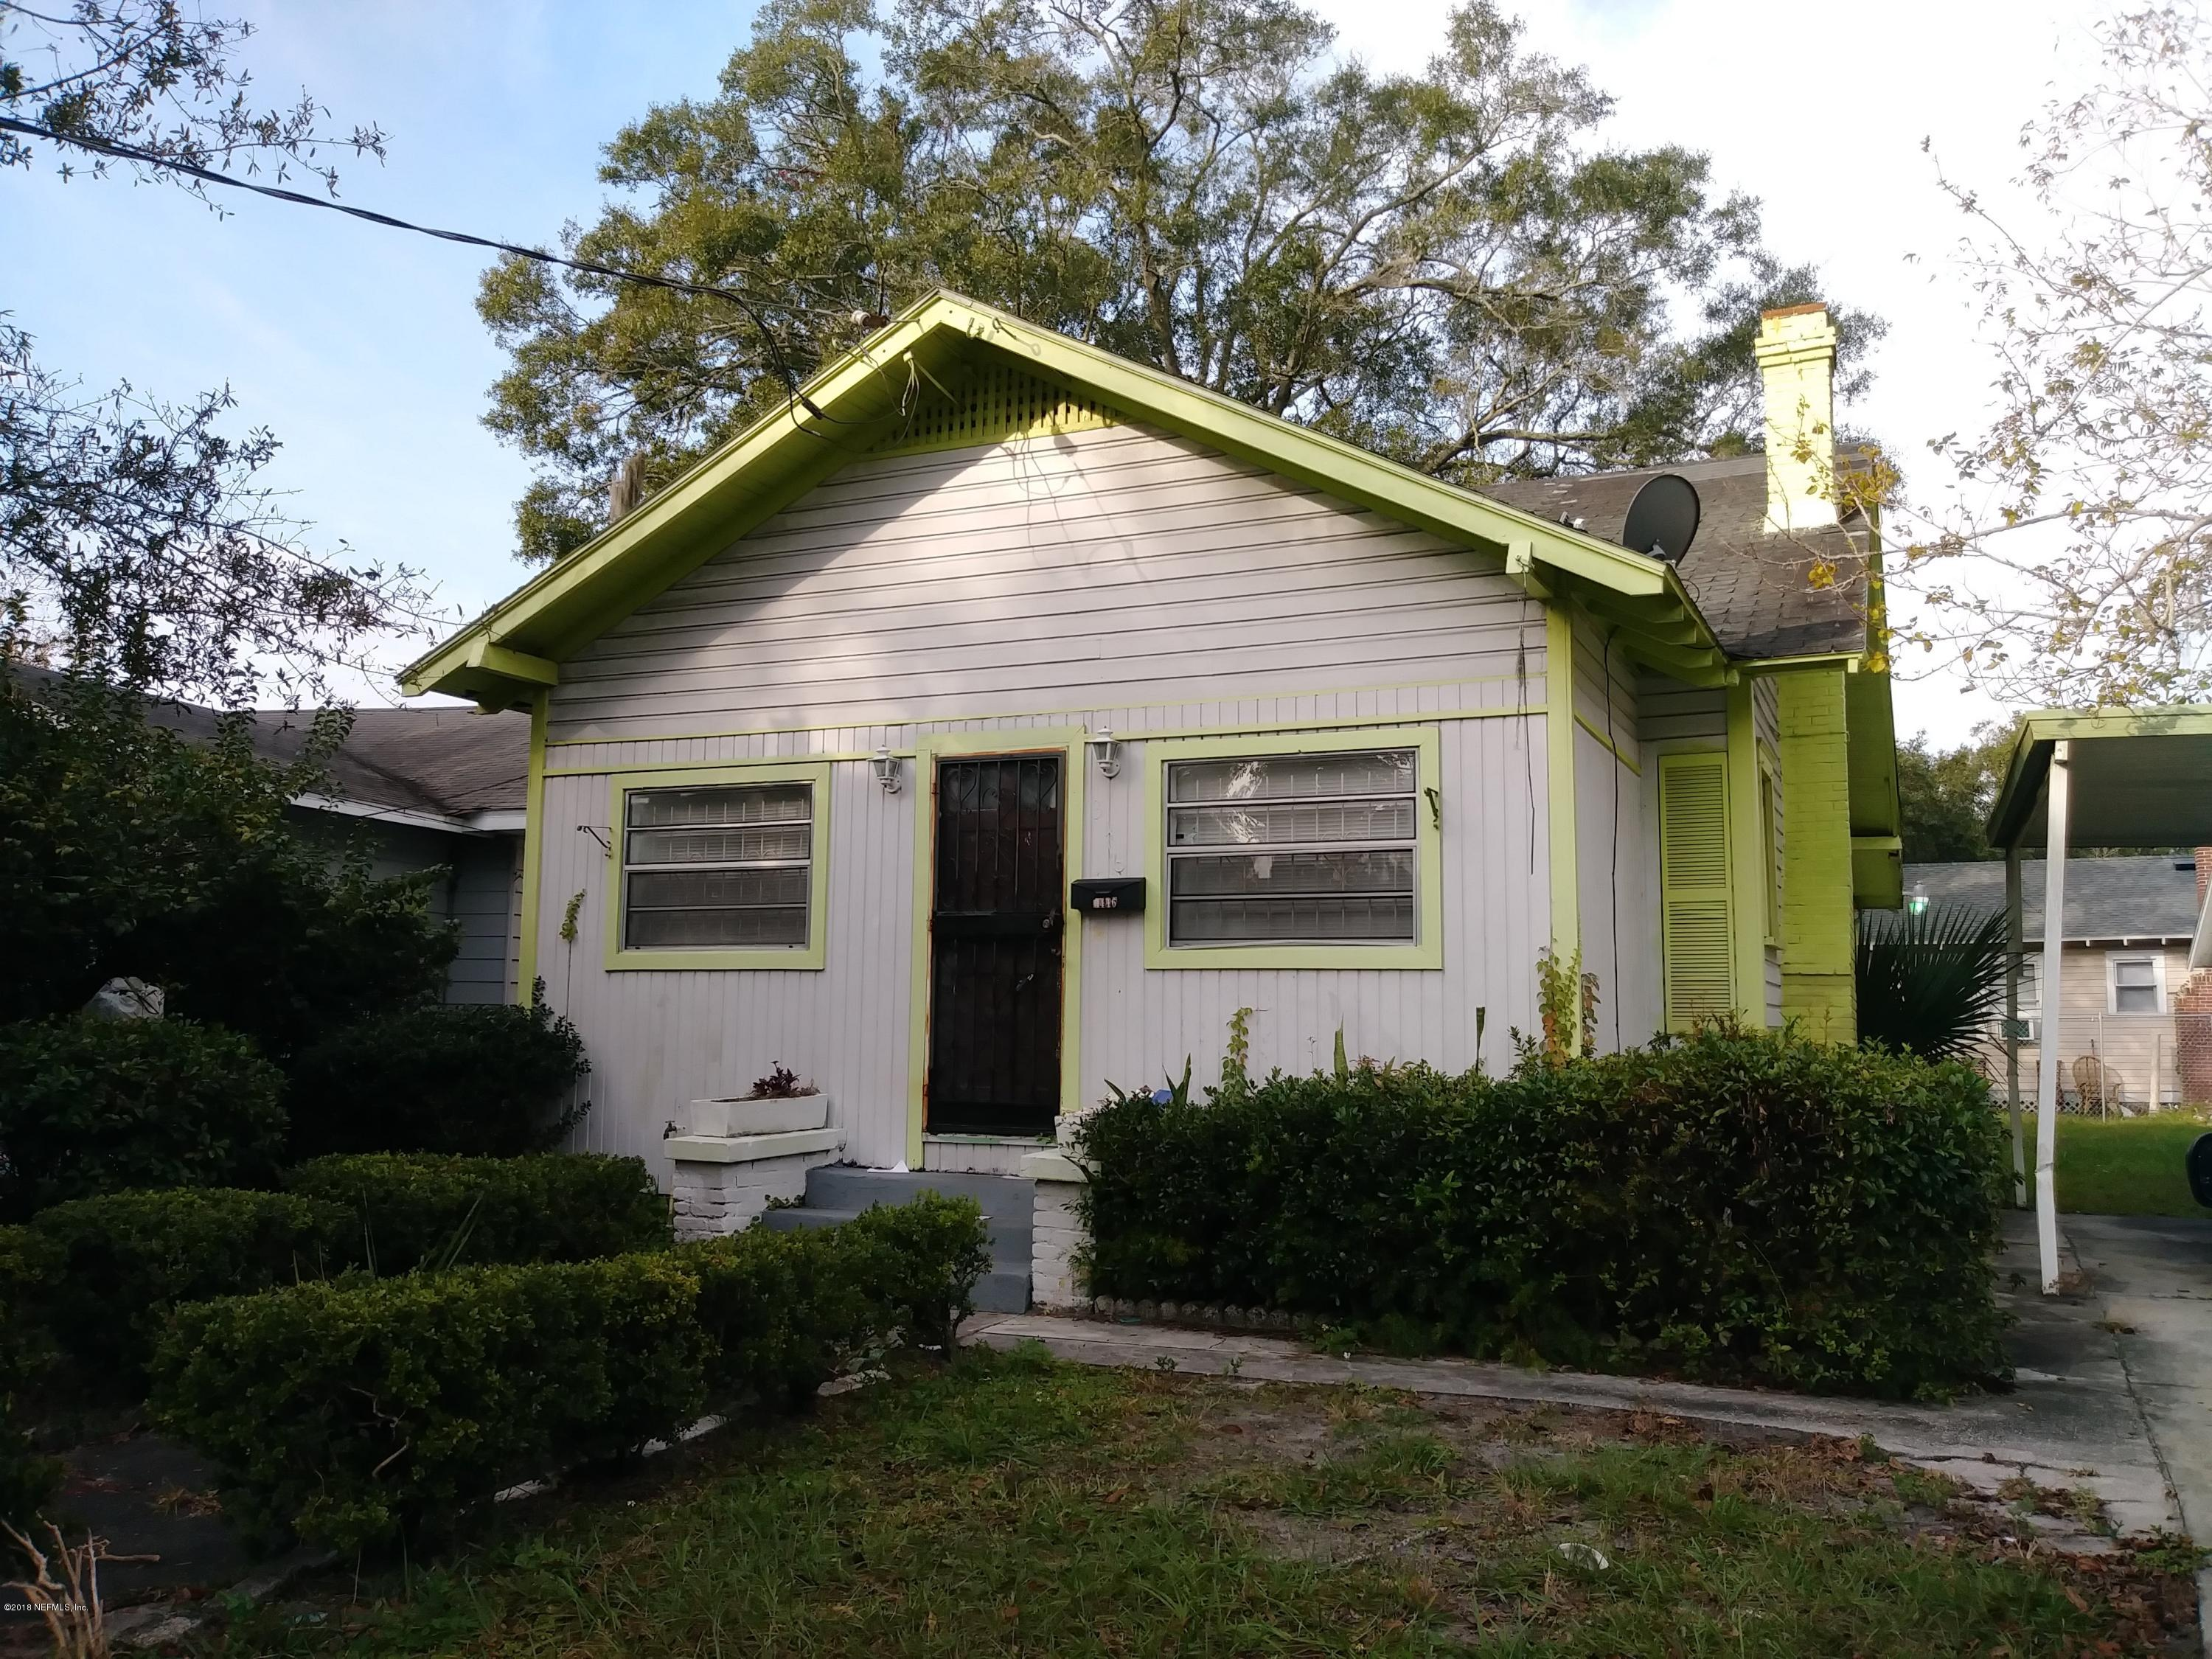 3416 BOULEVARD, JACKSONVILLE, FLORIDA 32206, 3 Bedrooms Bedrooms, ,1 BathroomBathrooms,Residential - single family,For sale,BOULEVARD,970098